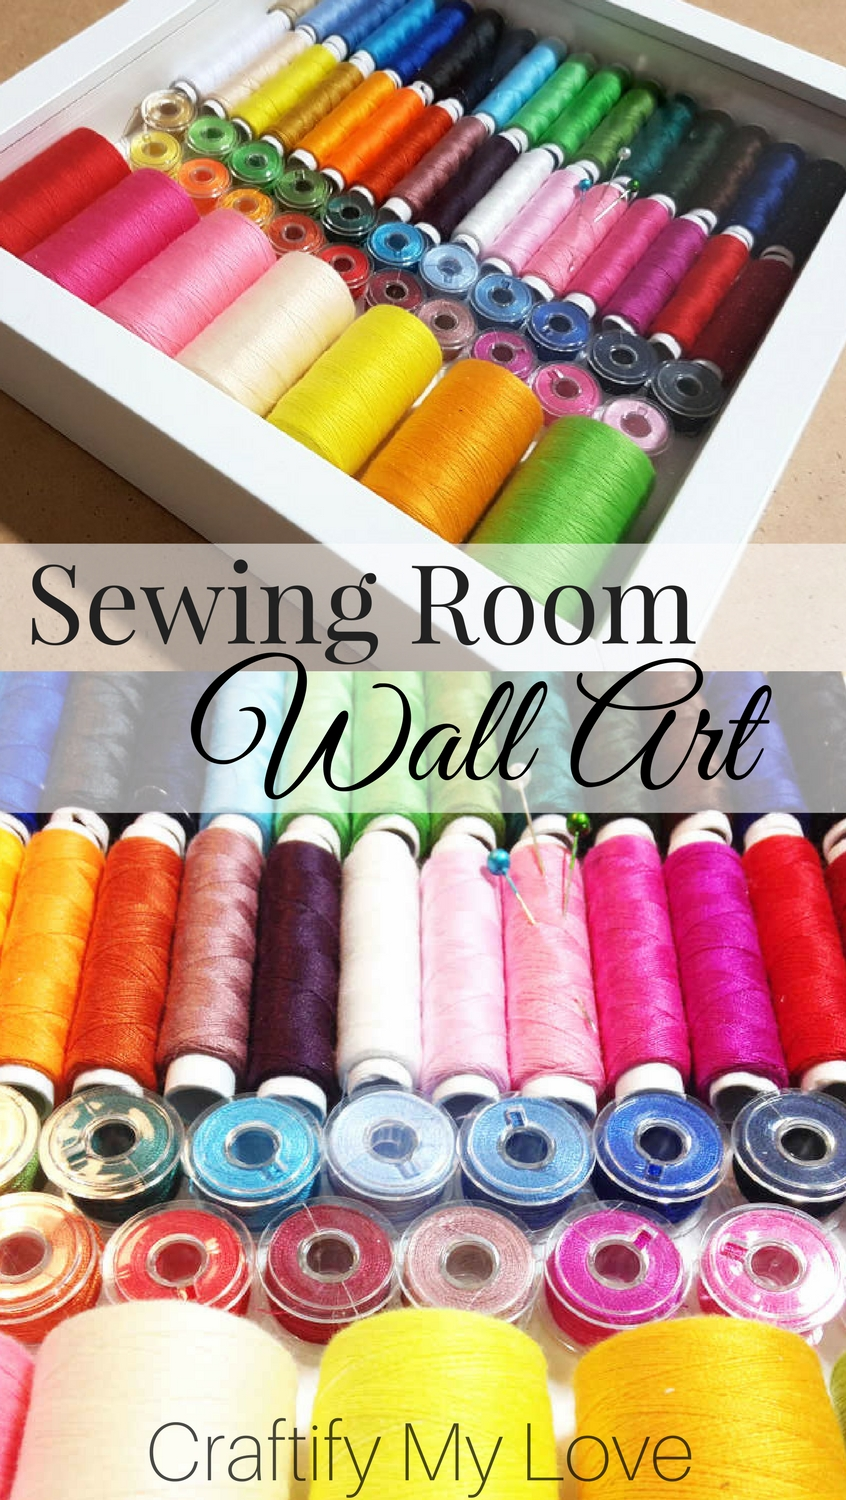 Make this easy yet stunning wall art for your Sewing or Craft Room using the IKEA frame Ribba | #IKEAhack #wallart #decor #craftroom #sewingroom #recyclingproject #upcycling #RIBBA #bobbins #spools